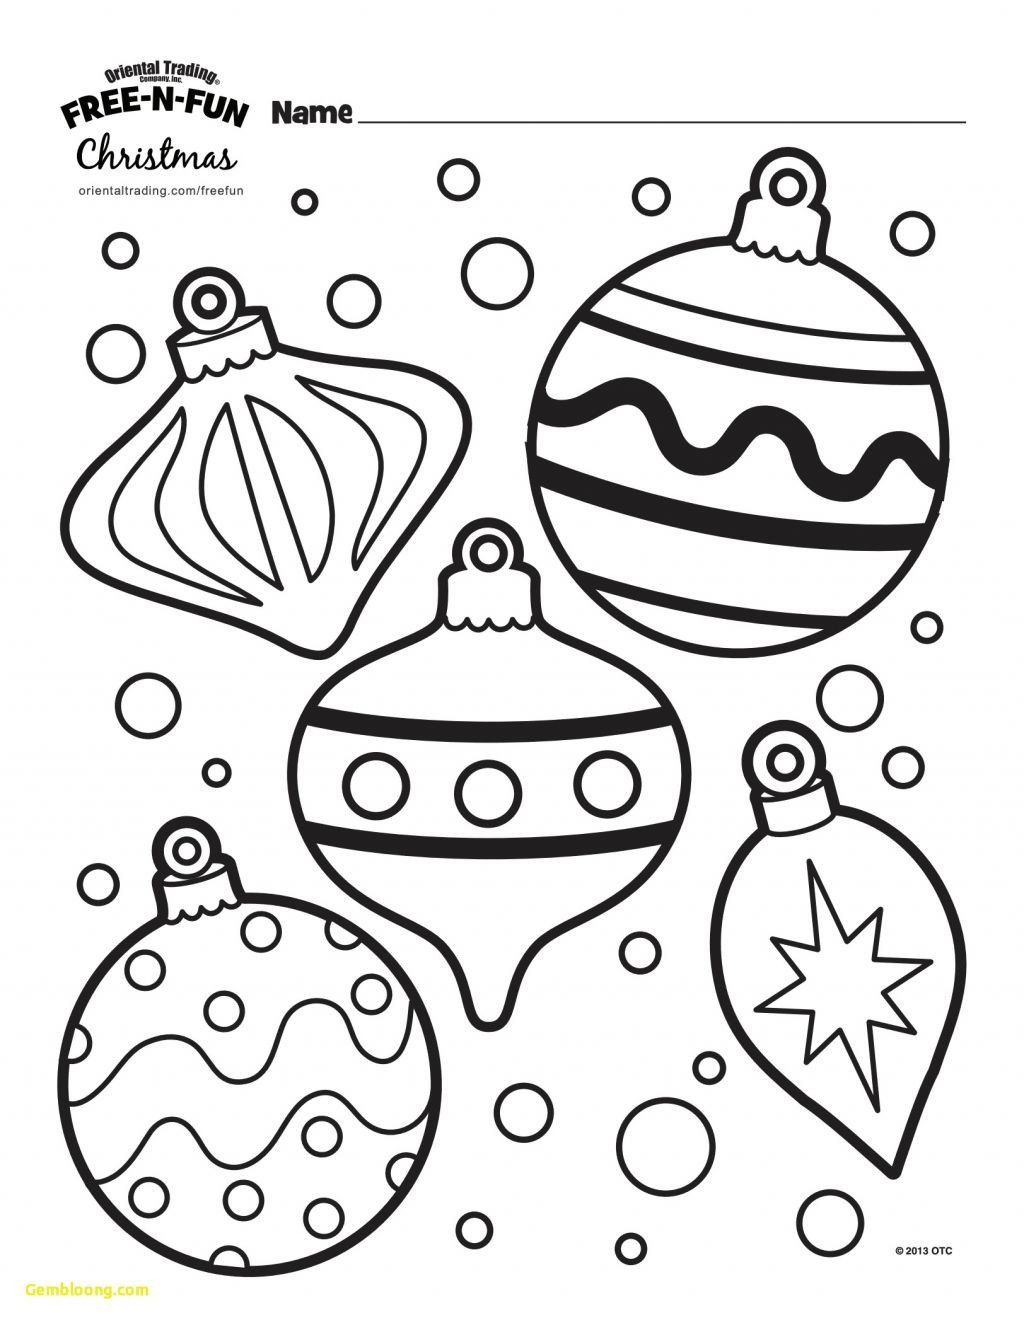 Kids Coloring Pages Printable Coloring Pages Christmas Coloring For K Printable Christmas Coloring Pages Free Christmas Coloring Pages Christmas Coloring Pages